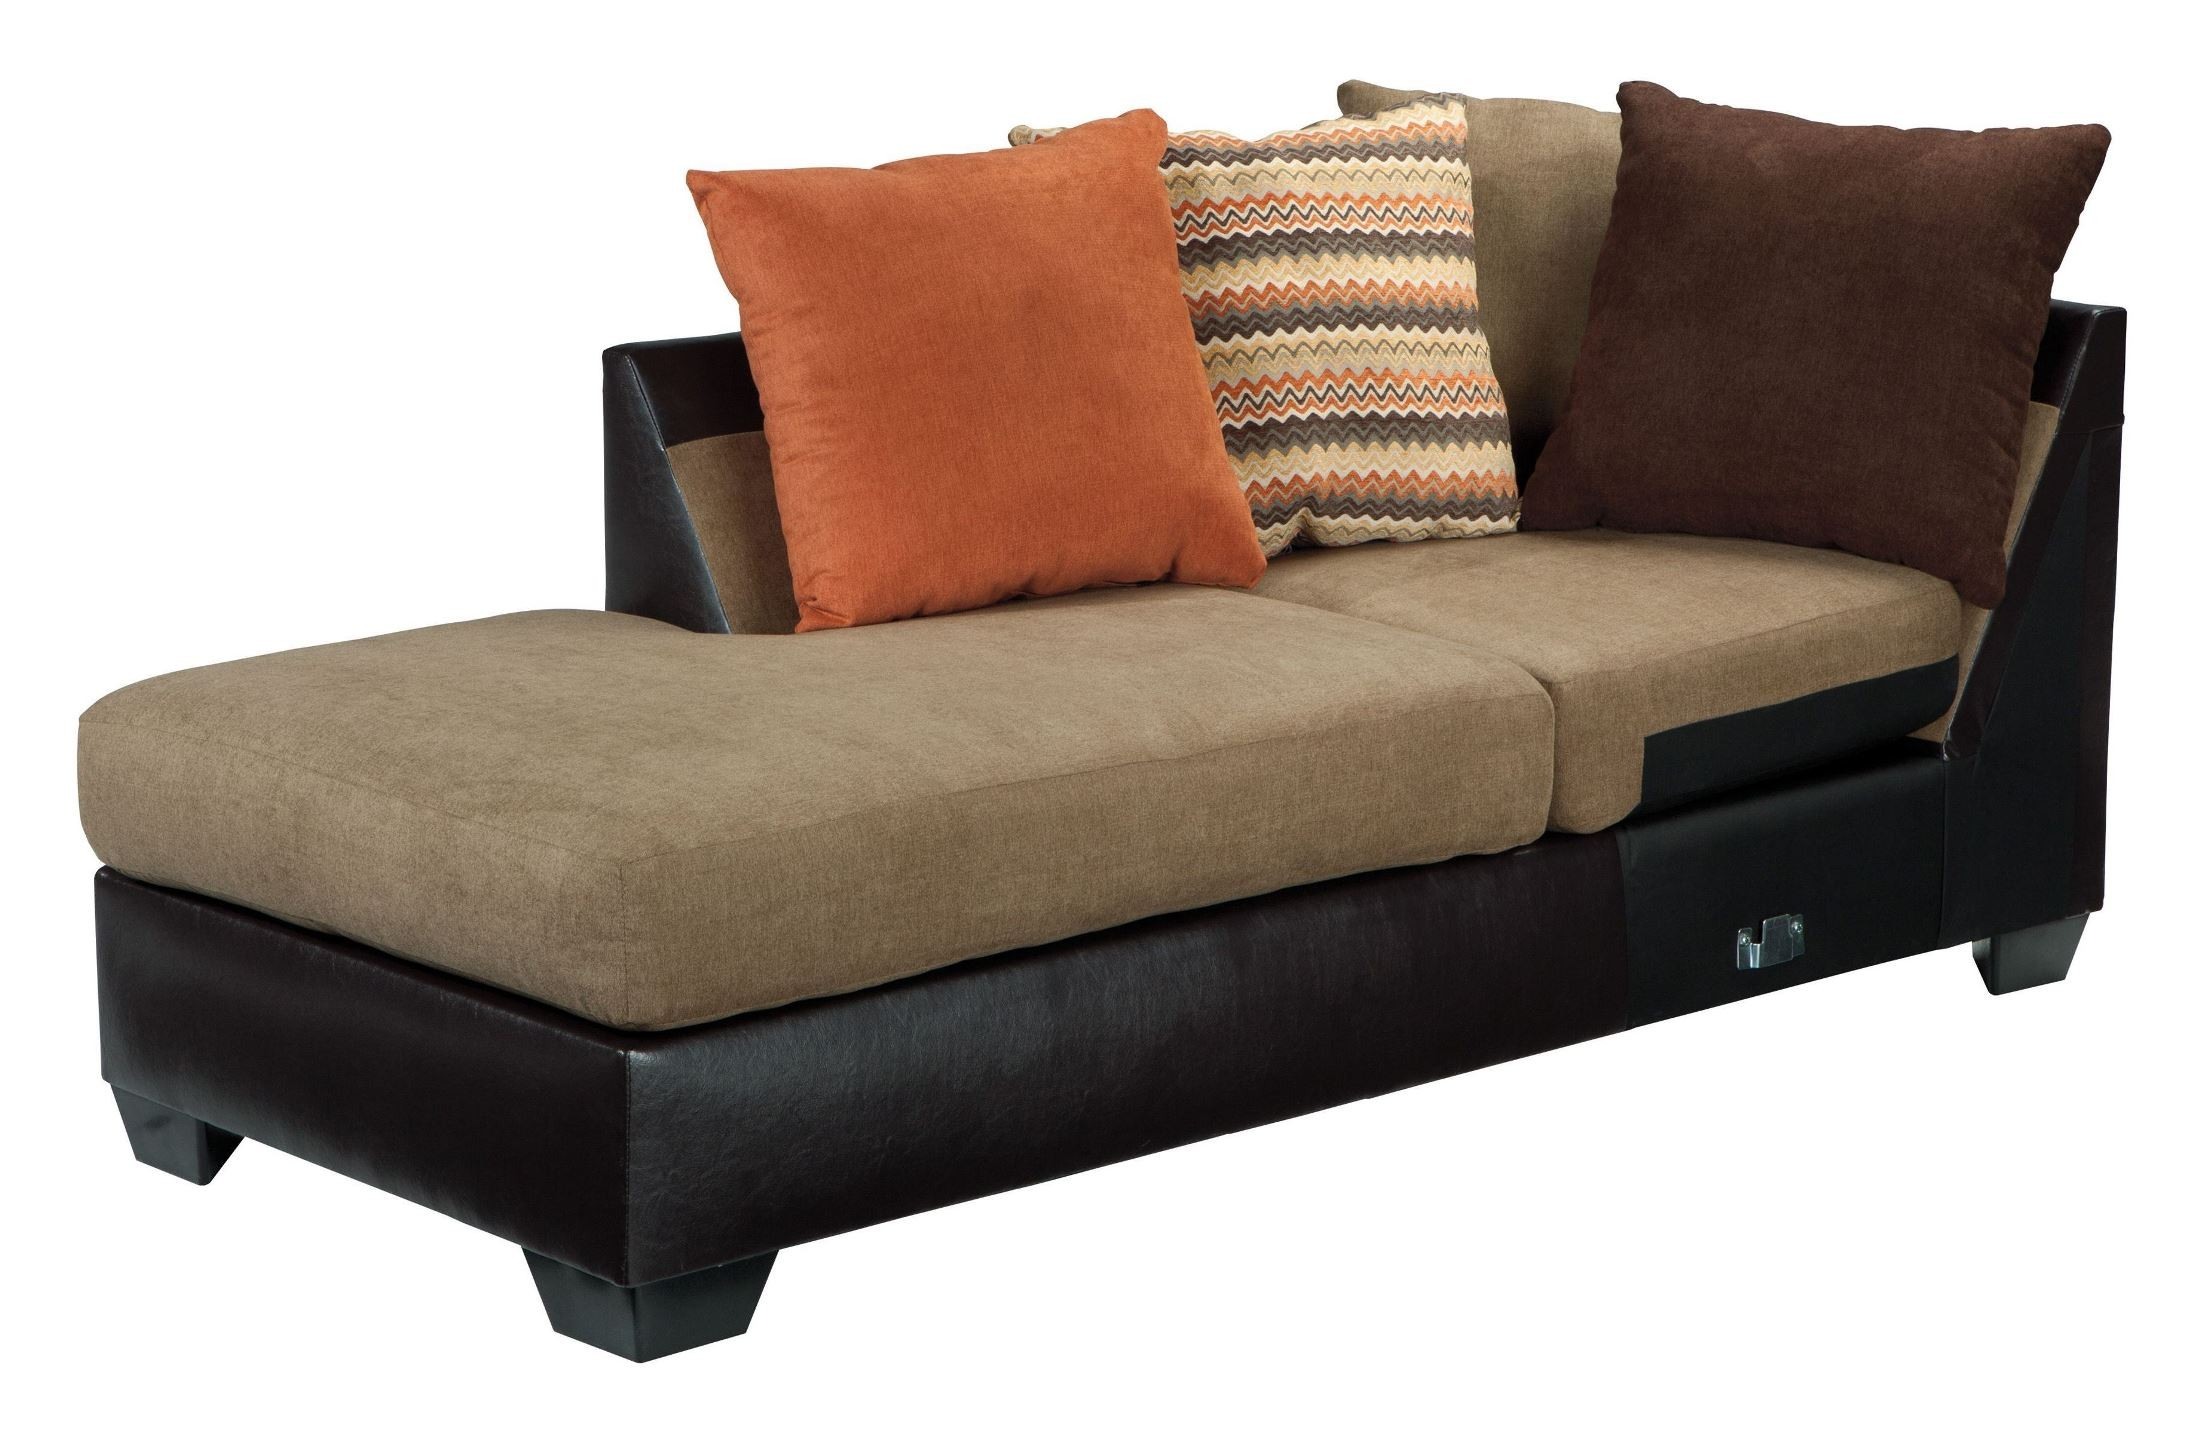 Armant mocha laf sectional from ashley 20202 16 67 for Ashley mocha sectional with chaise